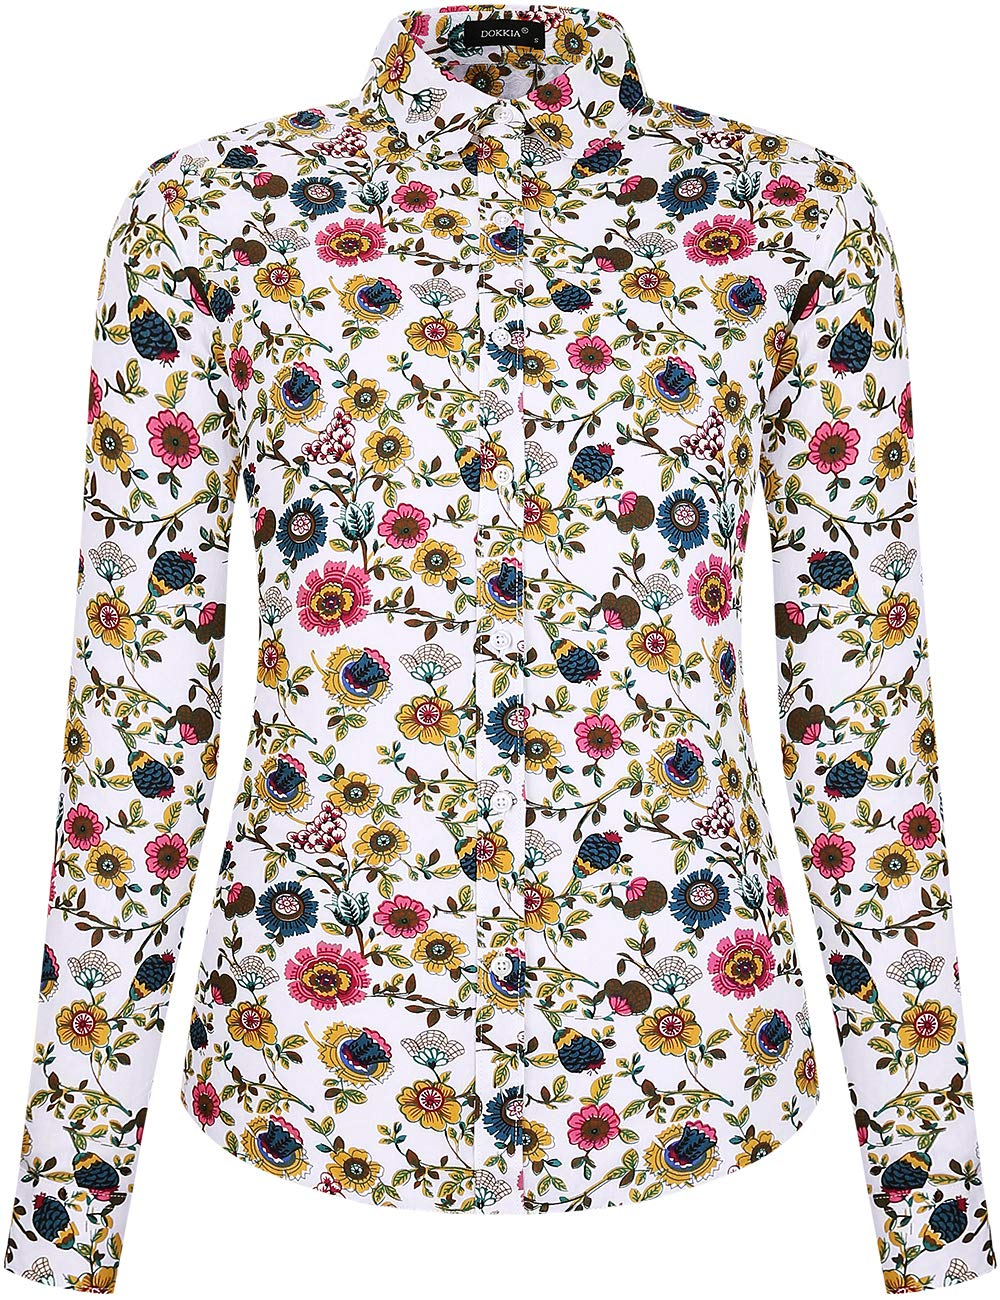 DOKKIA Women's Tops Vintage Casual Shirts Cotton Long Sleeve Work Button Up Dress Blouses (Yellow White Sunflower, Large)